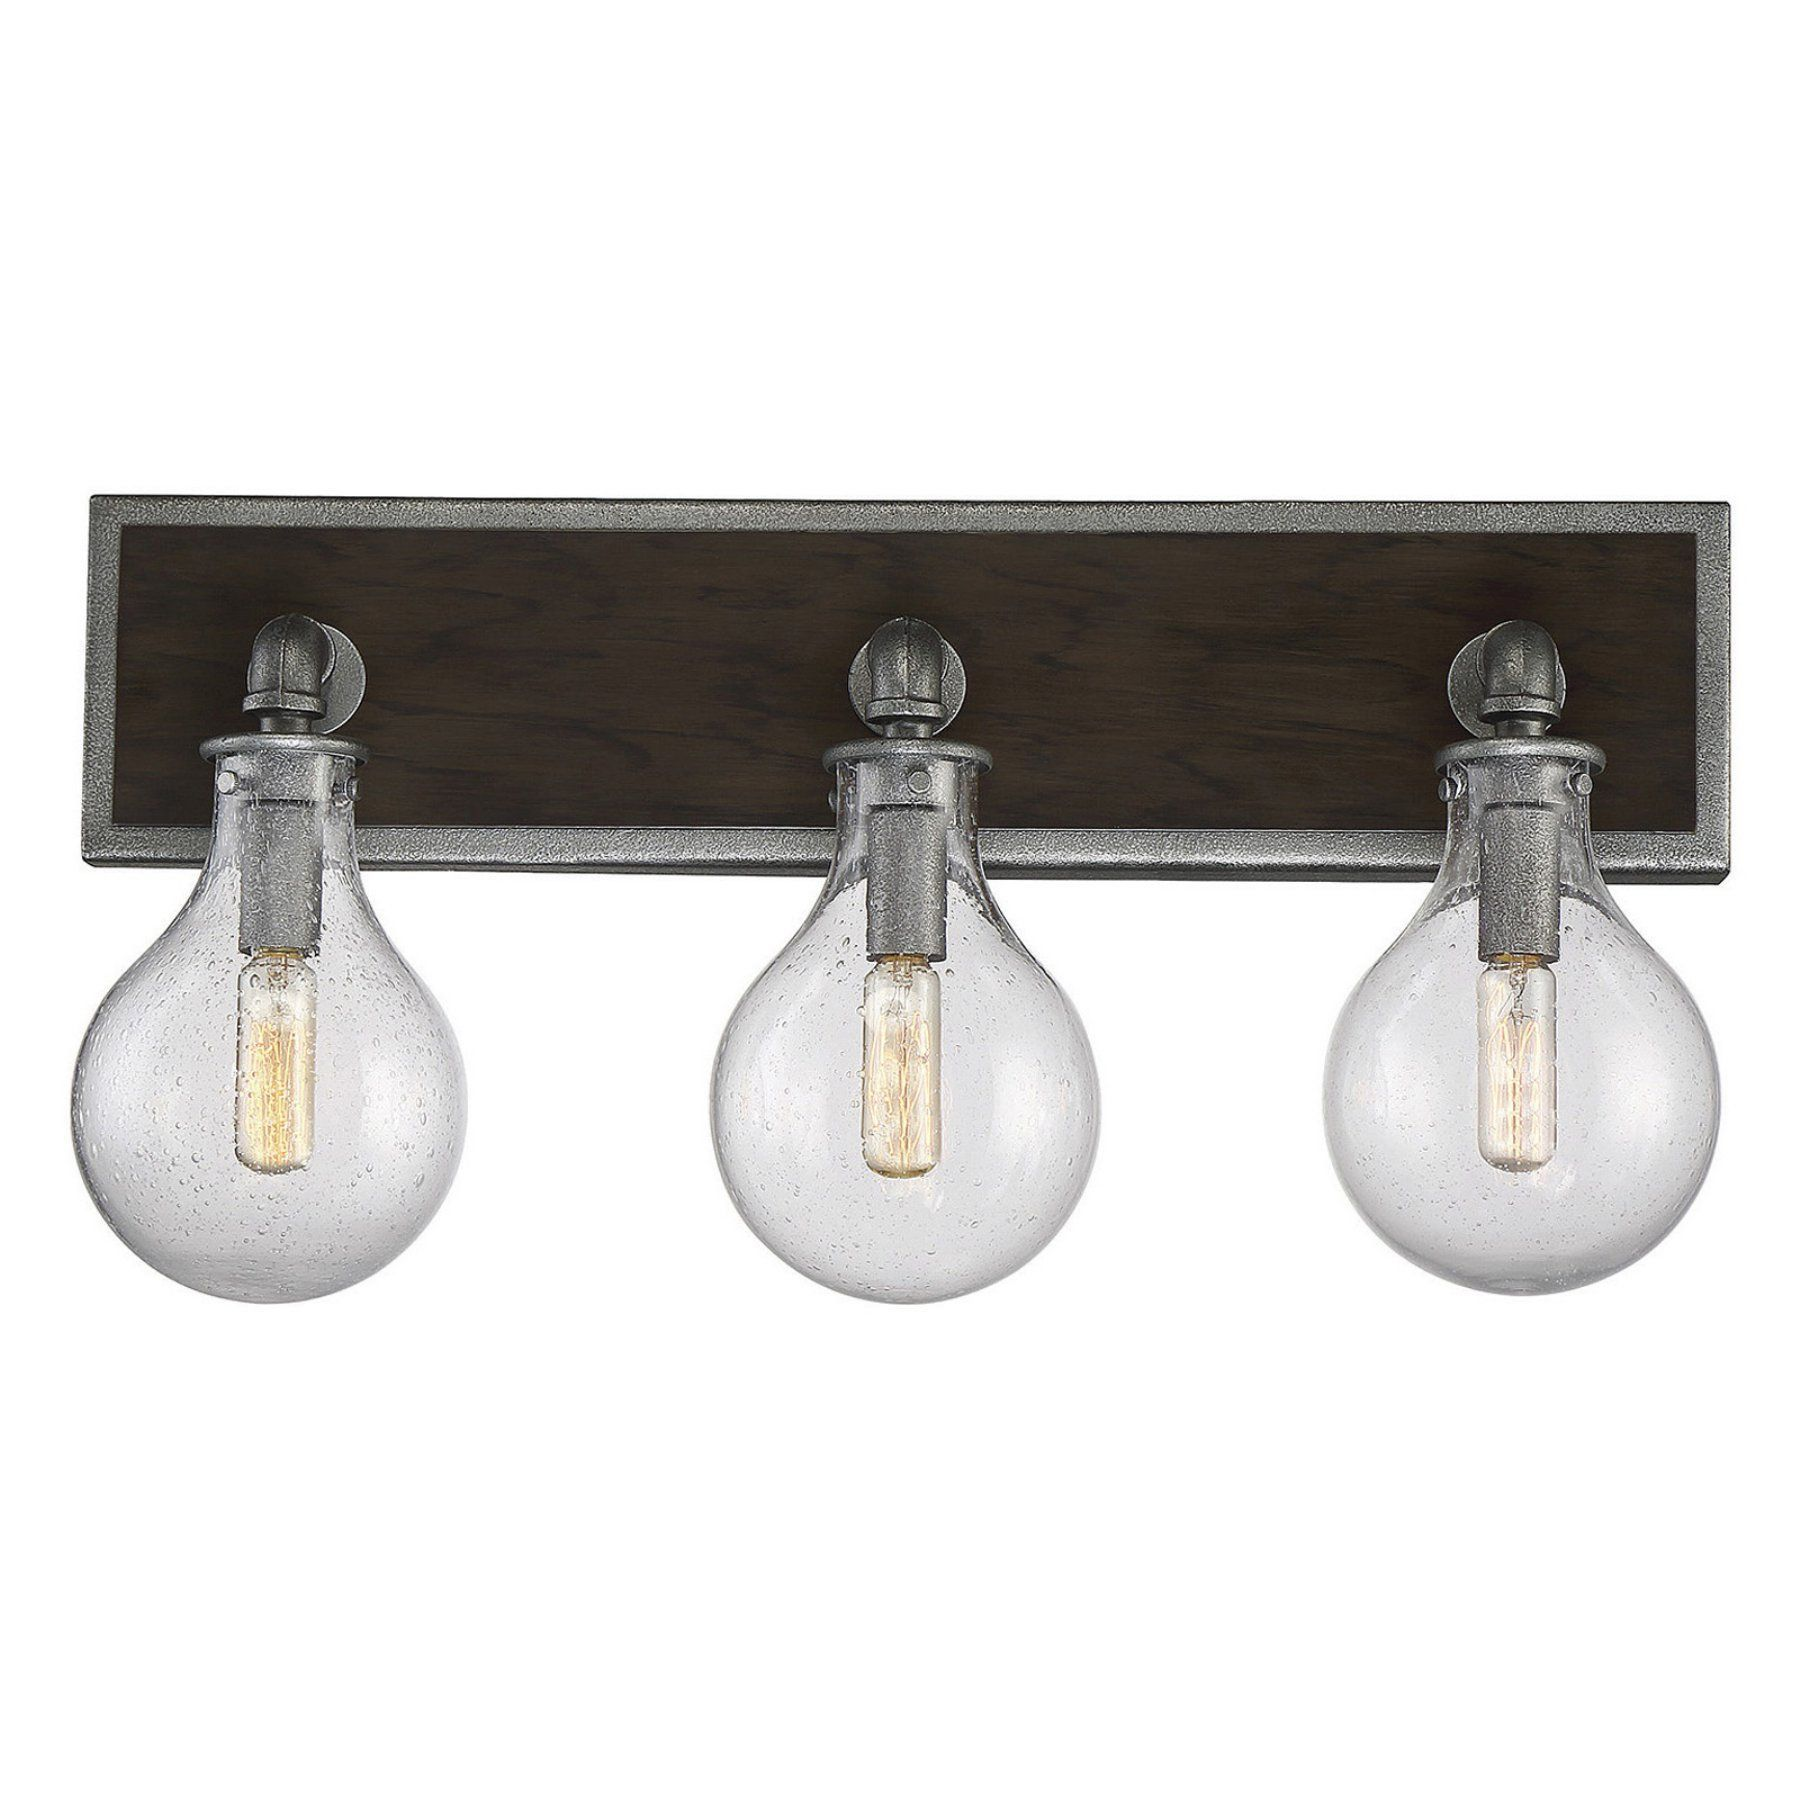 Savoy House Dansk 8 6073 3 90 Bathroom Vanity Light 8 6073 3 90 Vanity Lighting Bath Vanity Lighting Bathroom Vanity Lighting